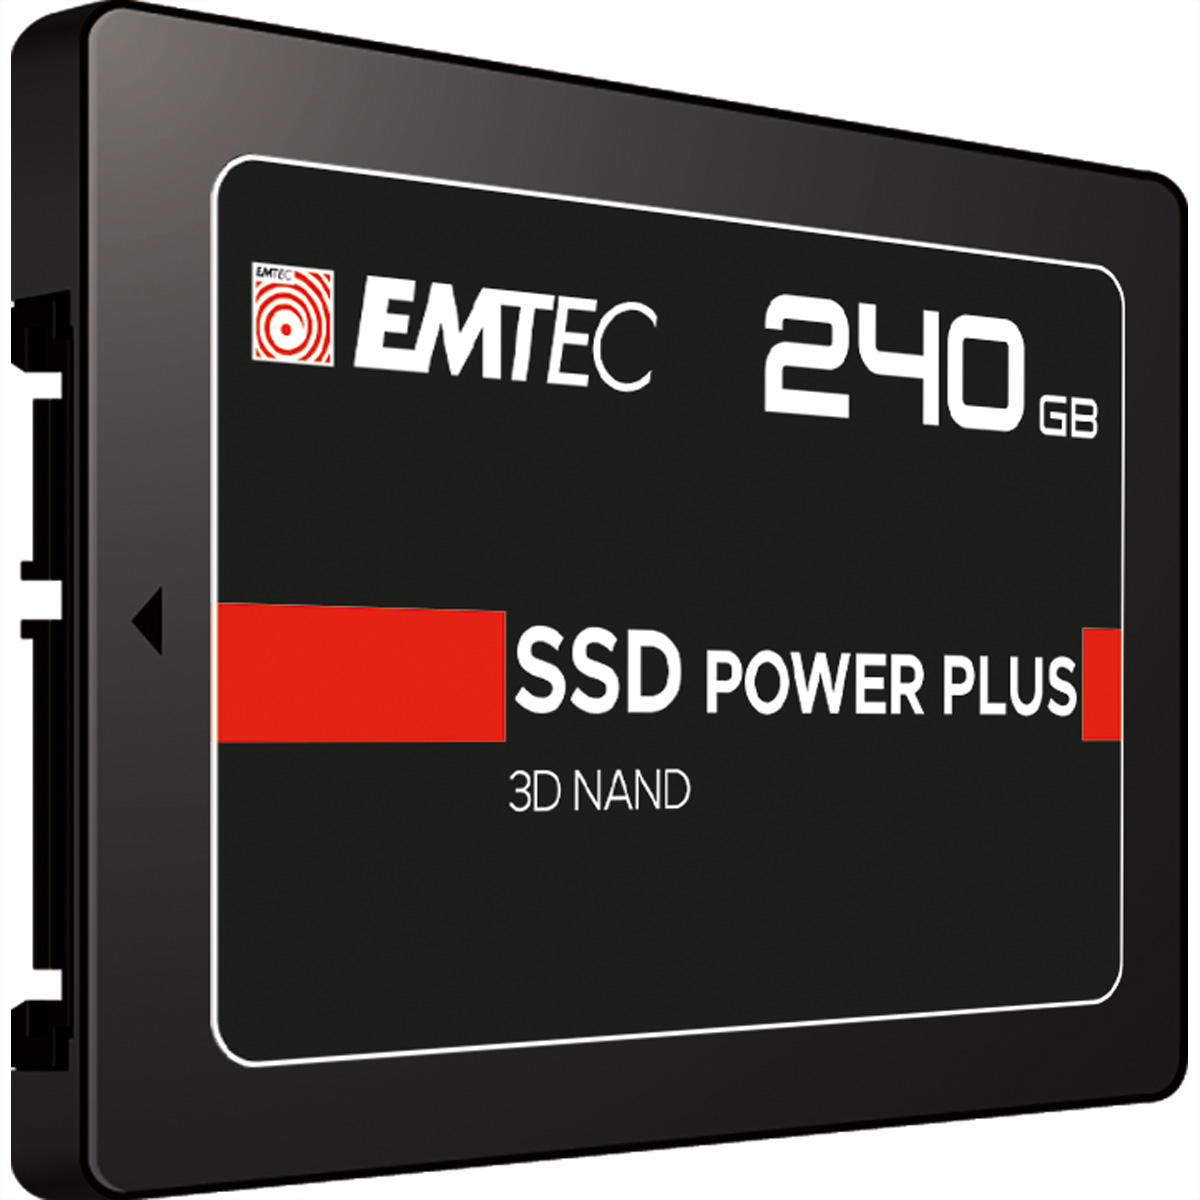 EMTEC SSD Intern X150 240GB, SSD Power Plus, 2.5 Zoll, SATA III 6GB/s